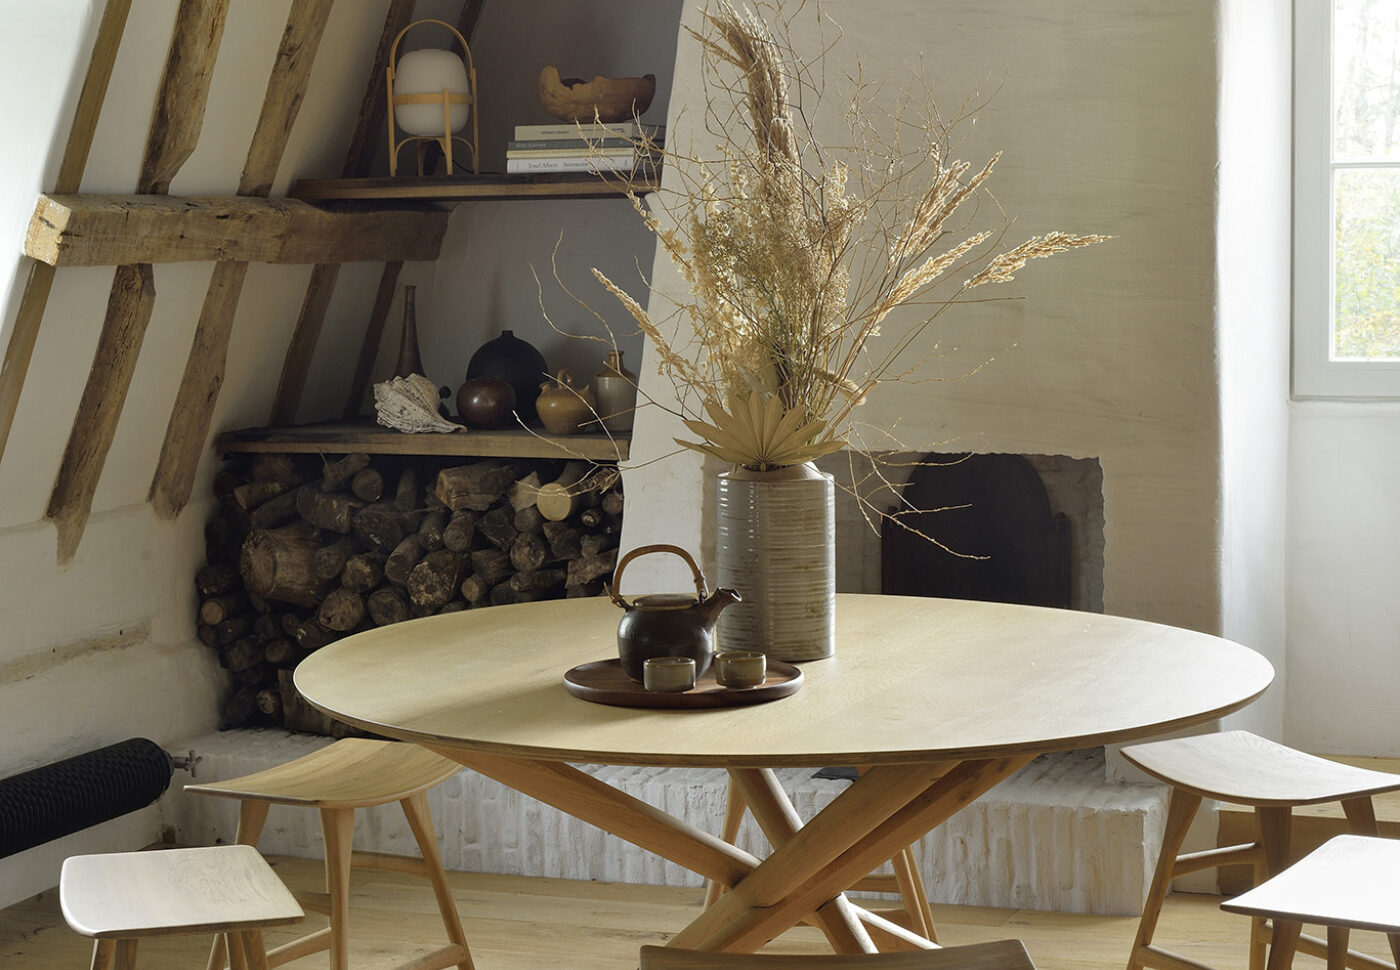 50545 Mikado round dining table 53033 53035 Oak Osso stool vertical